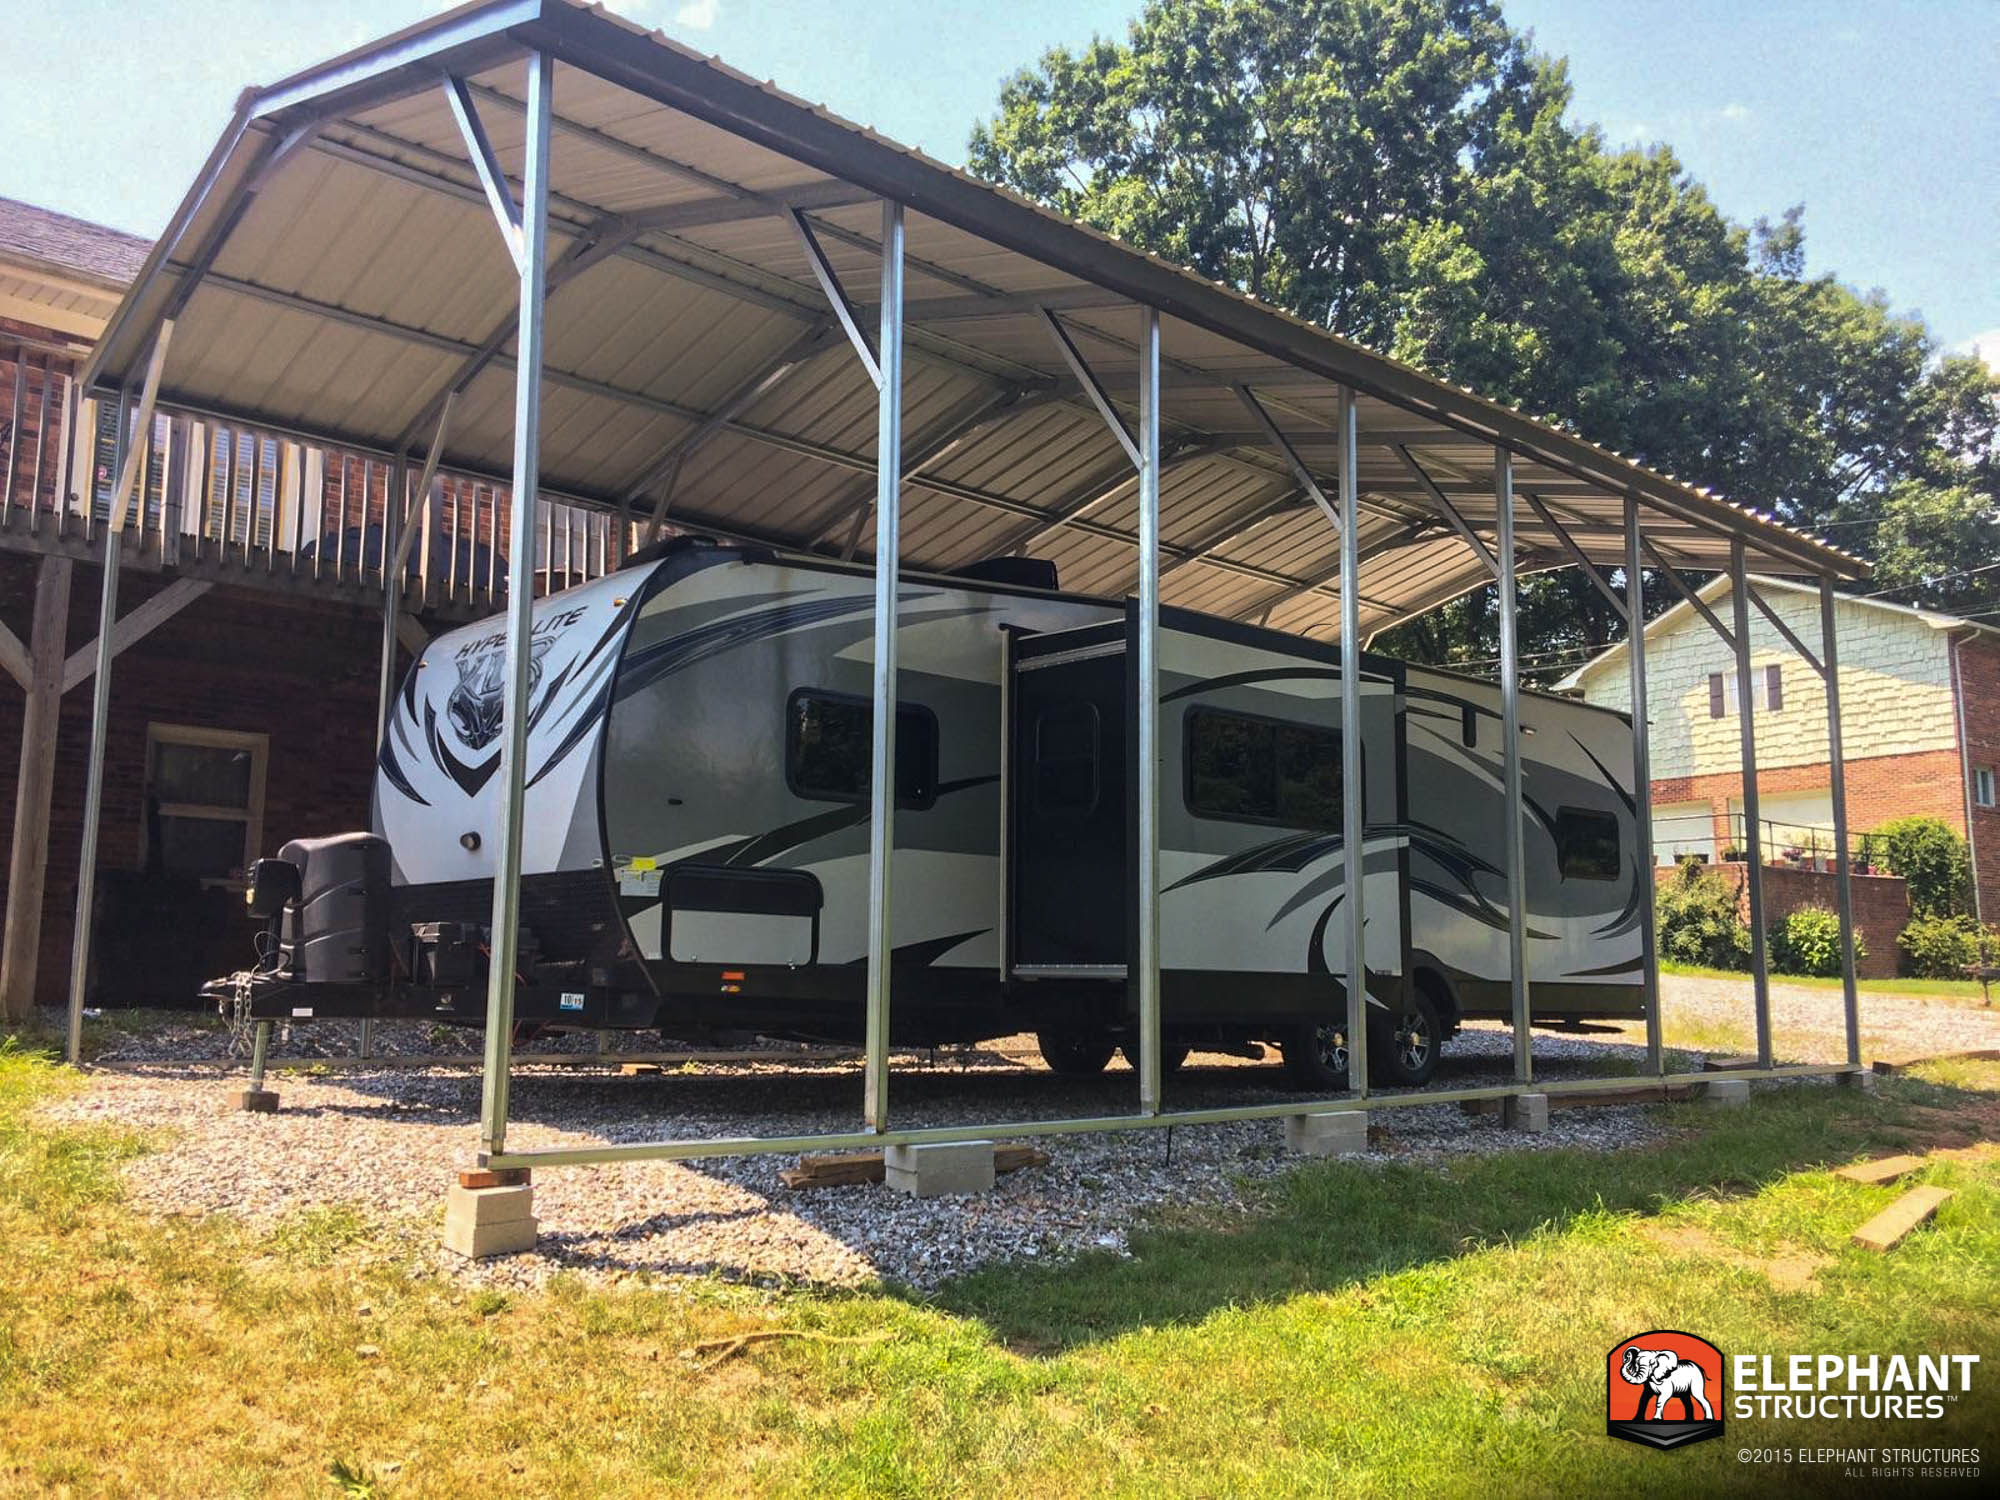 Metal Carports For Campers : Metal shelters steel covers and